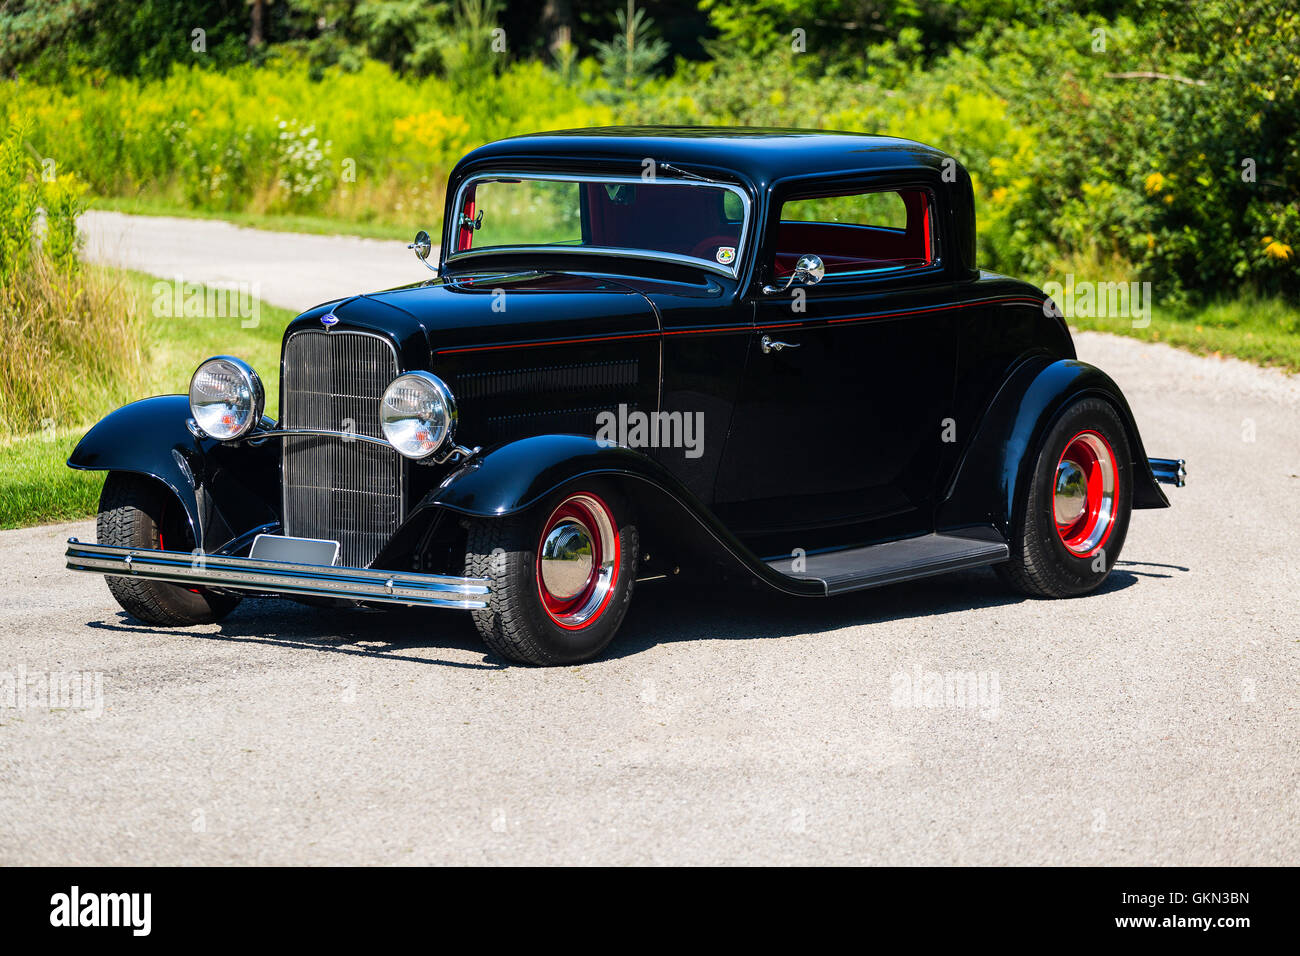 1932 Ford 3 Window Coupe Hot Rod Stock Photo: 115404345 - Alamy